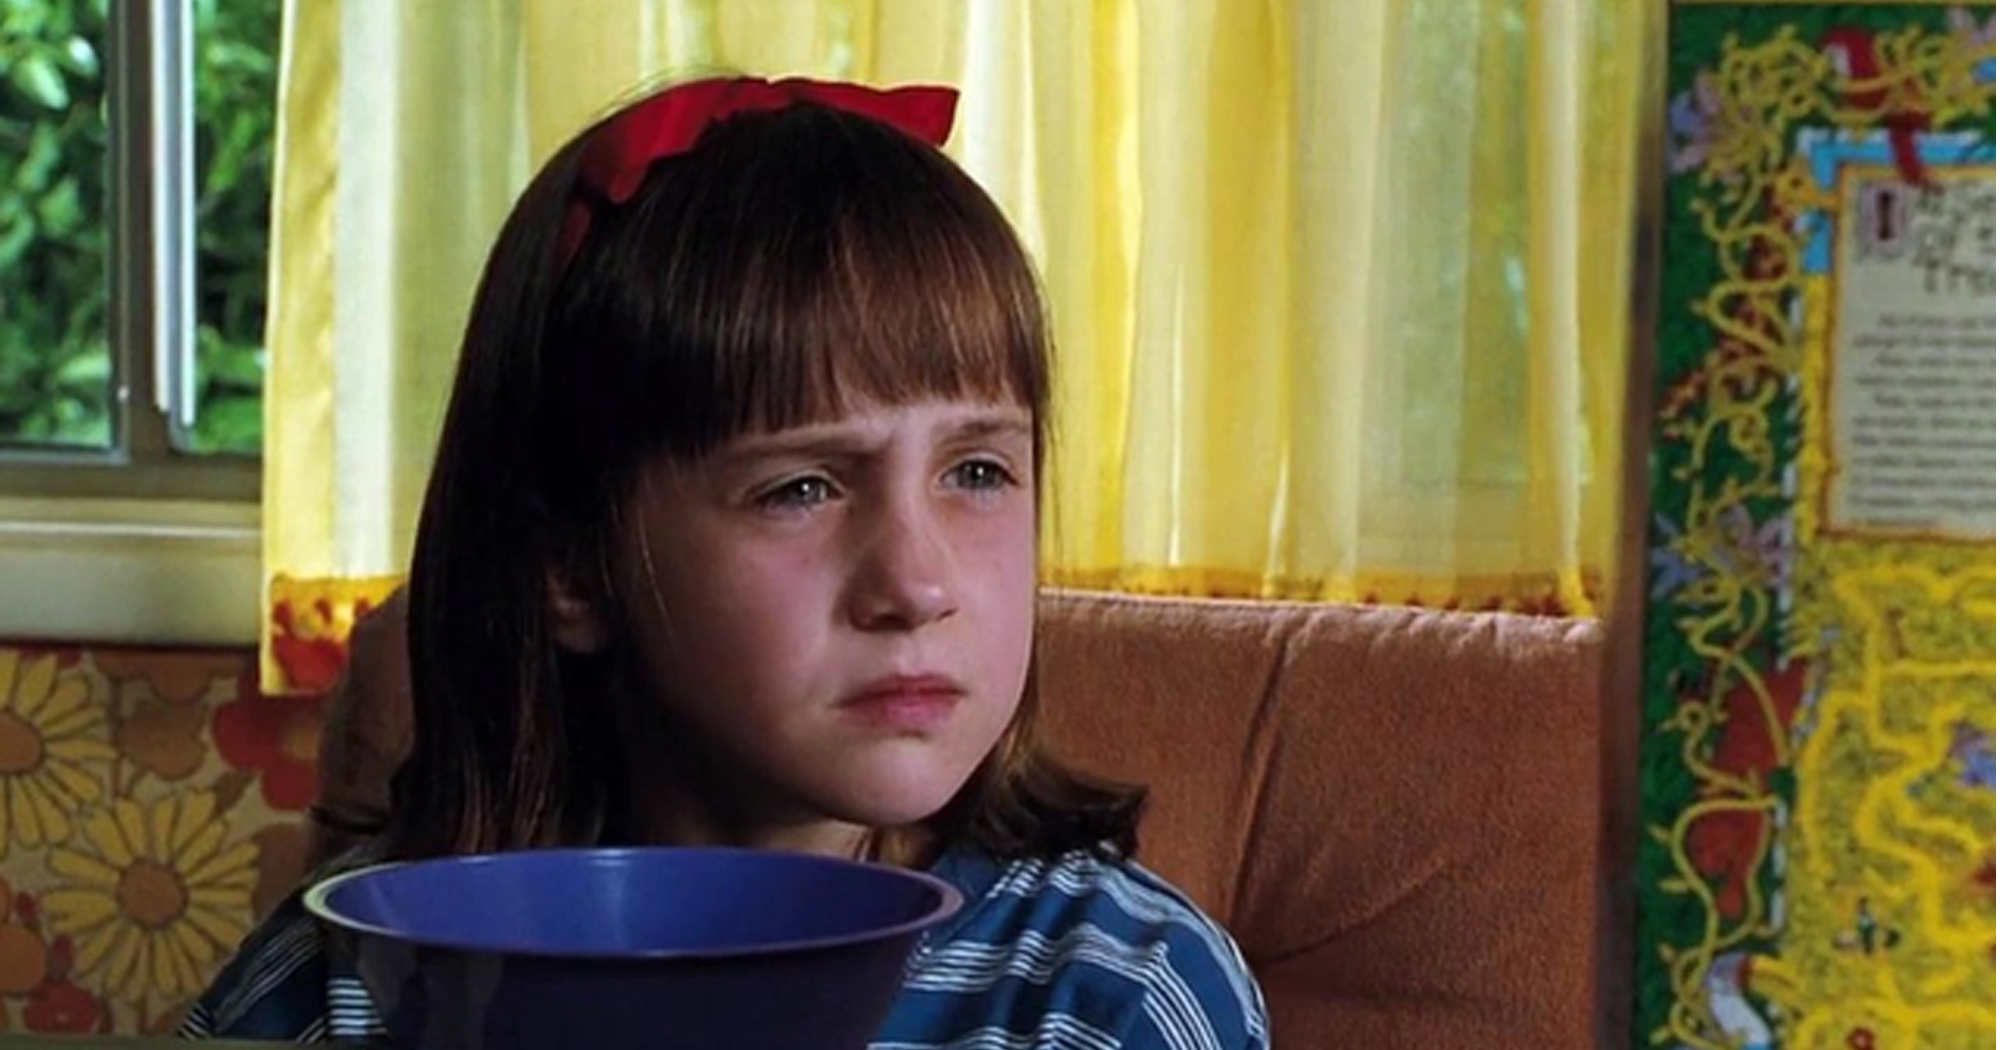 film analysis matilda Ever wondered how matilda follows the standard plot of most stories come on in and read all about it.